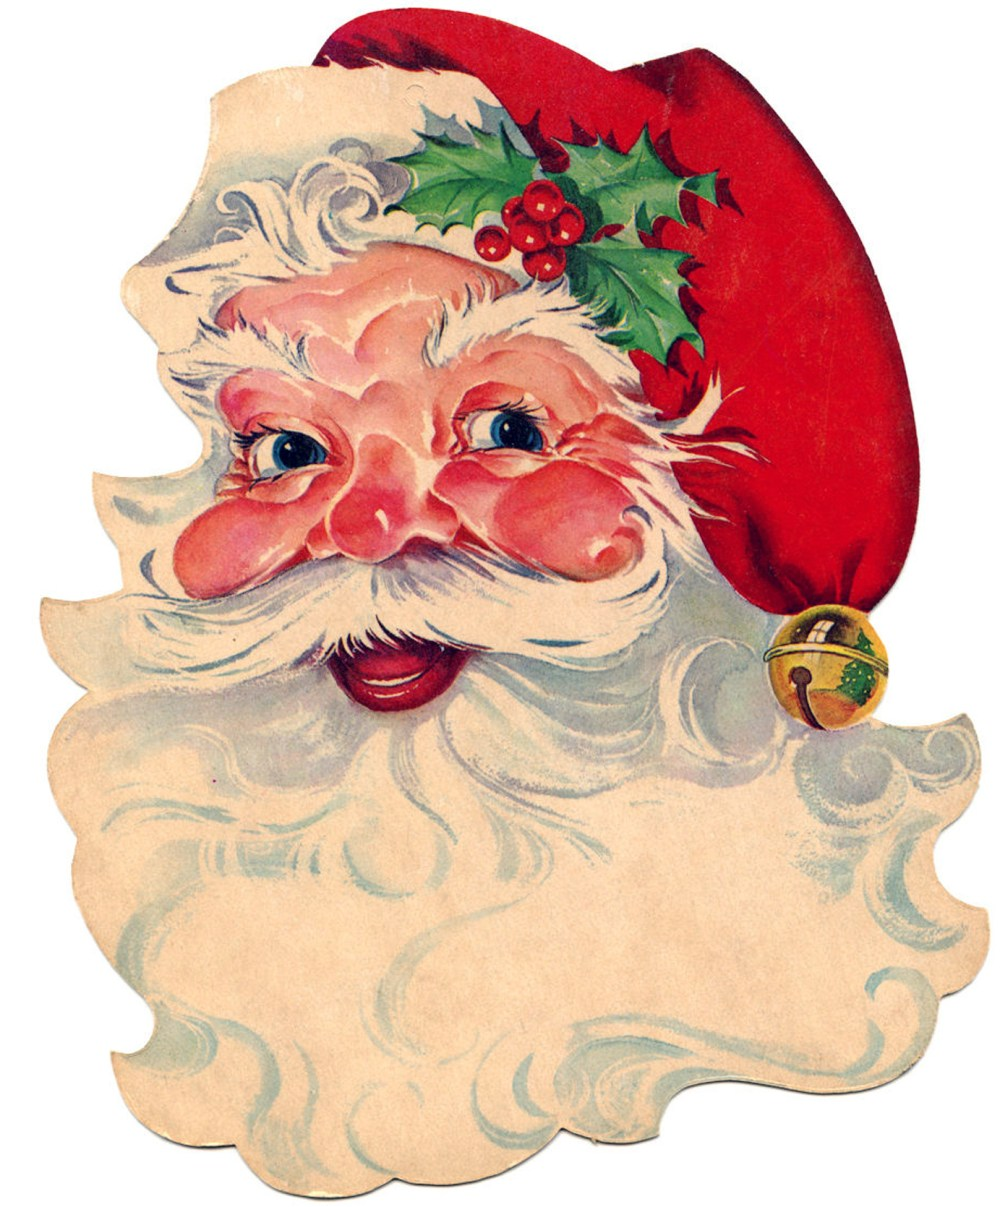 medium resolution of click here to download the larger updated scan for this santa